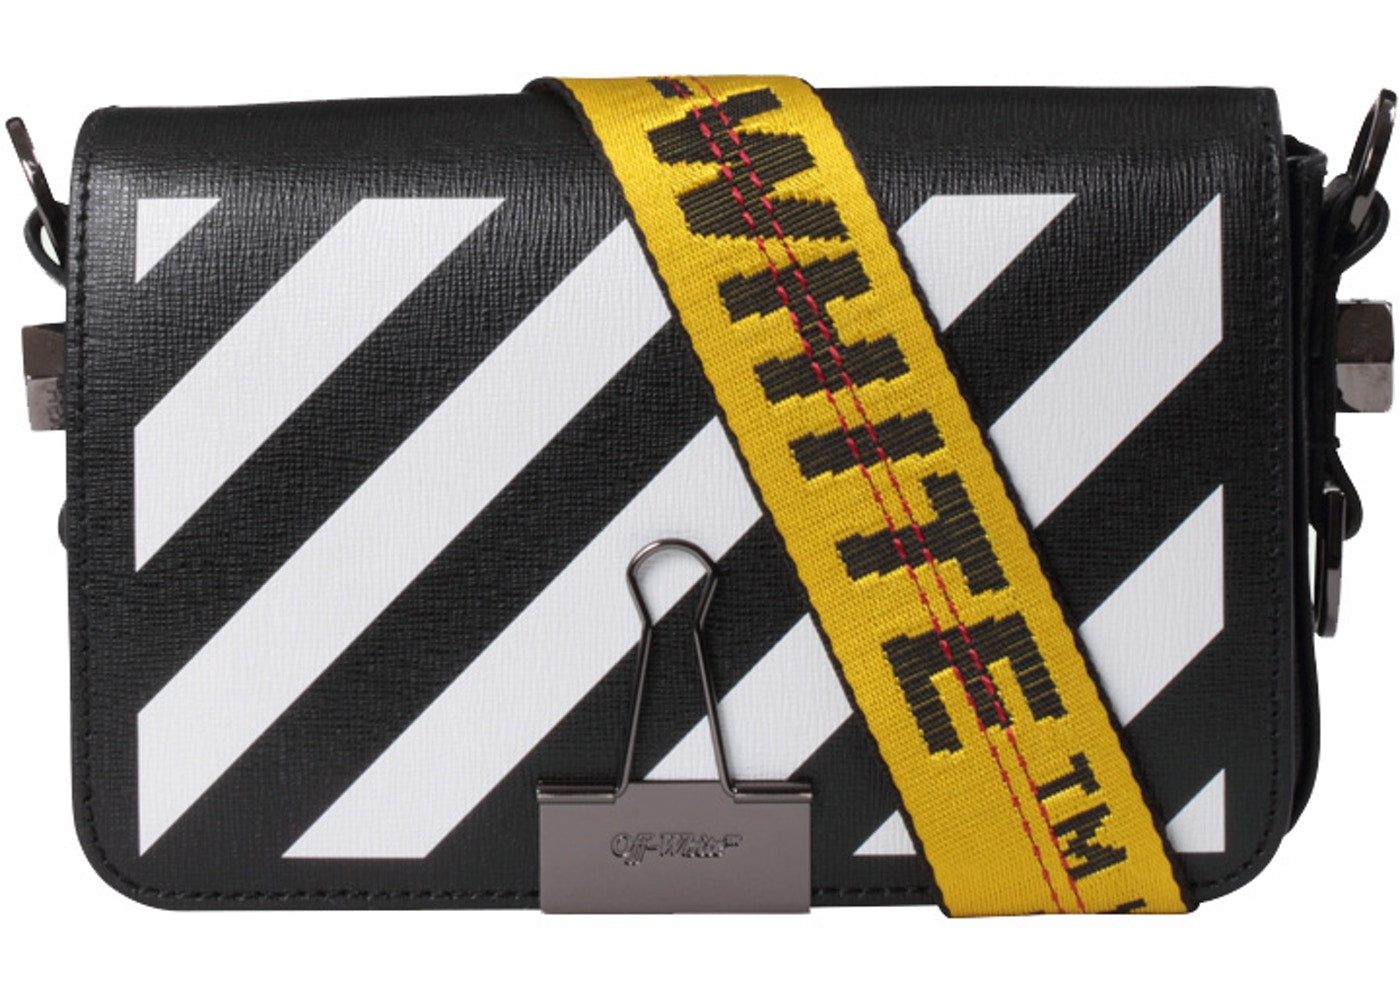 OFF-WHITE Binder Clip Bag Diag Mini Black White Yellow - CookiesandKicksLA